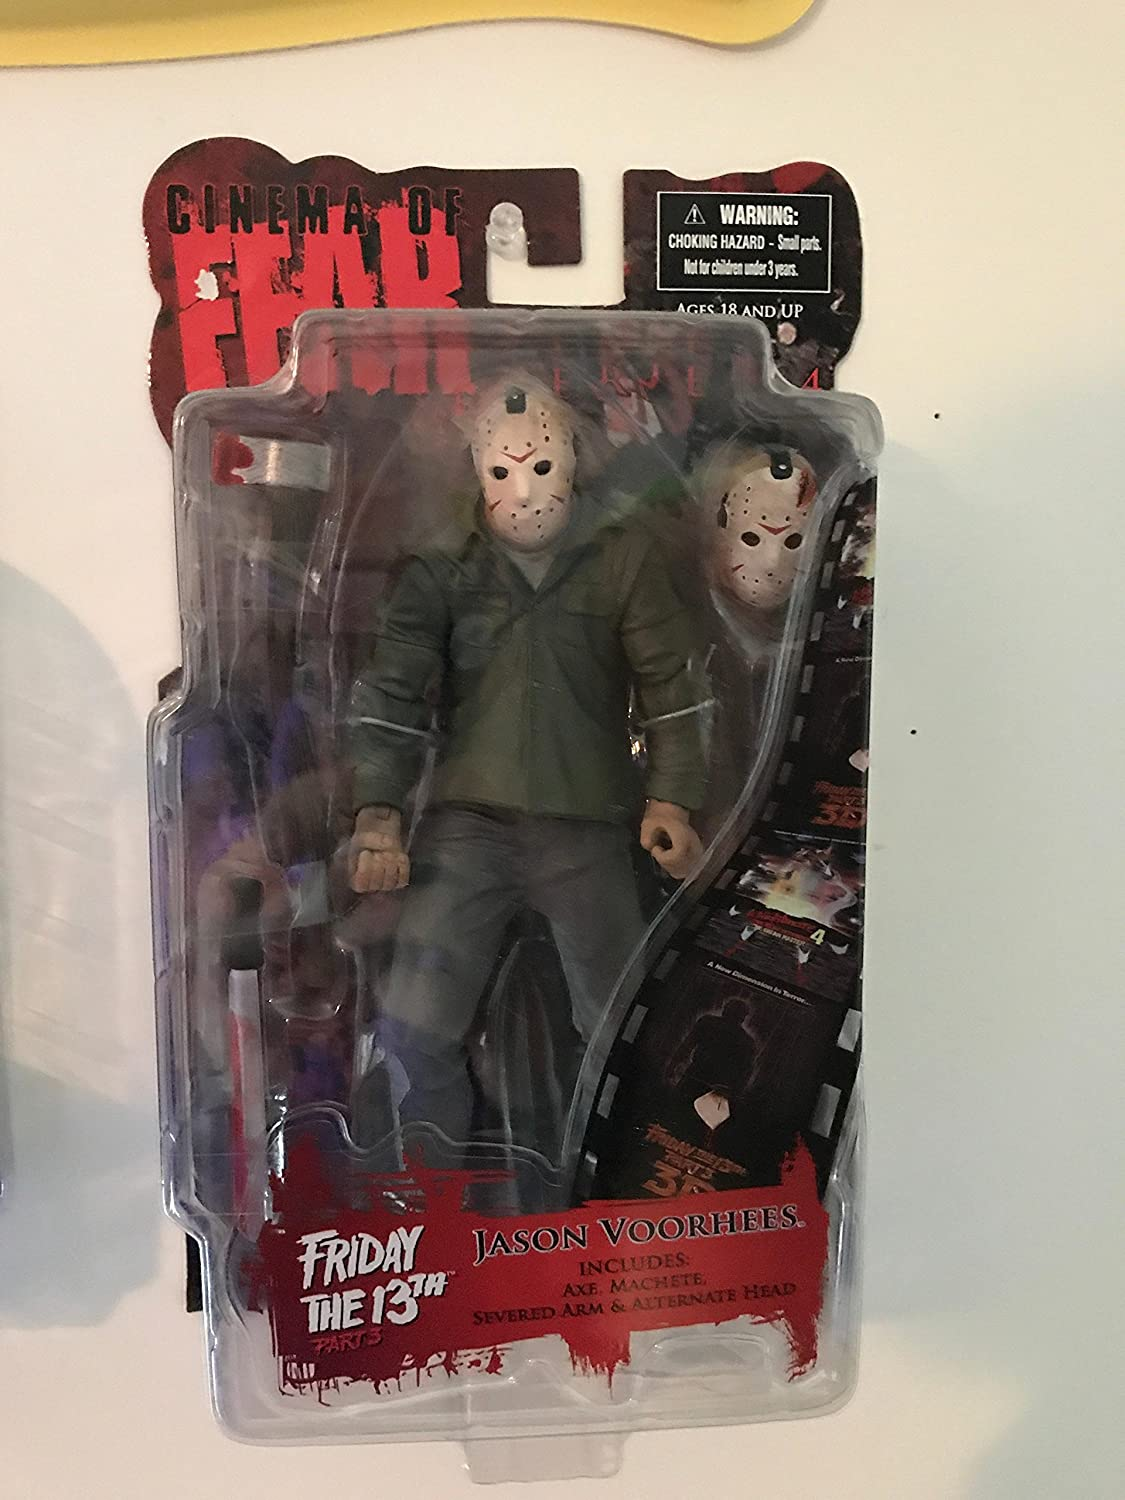 Mezco Toys One:12  Friday The 13th Part 3 Jason Voorhees Action Figure